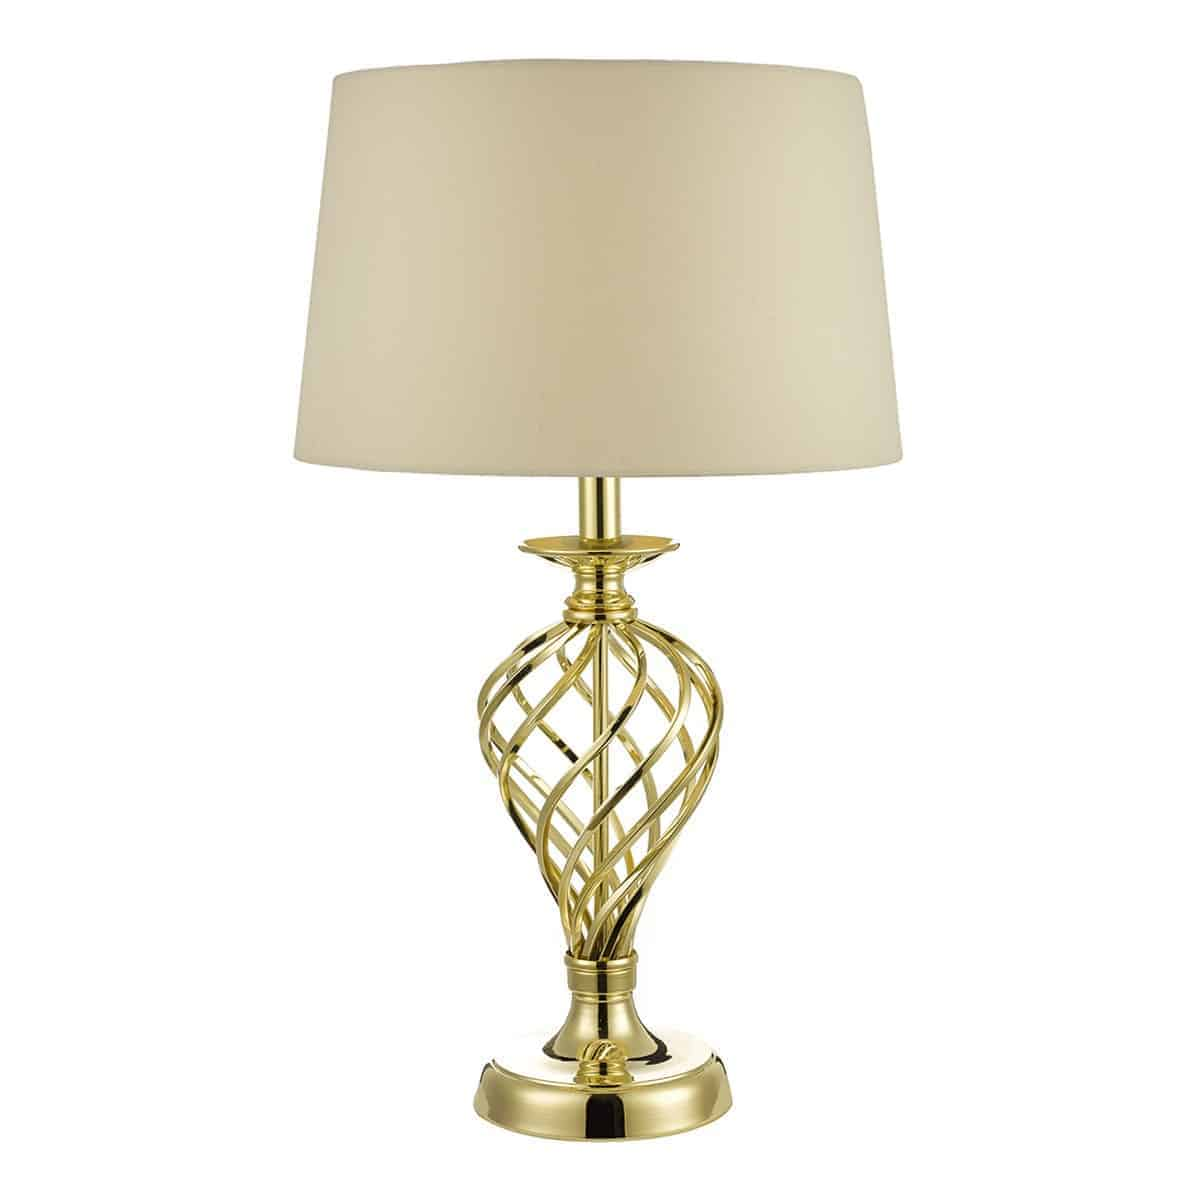 Där IFF4335 Iffley Large Table Lamp Gold complete with Cream Shade Touch